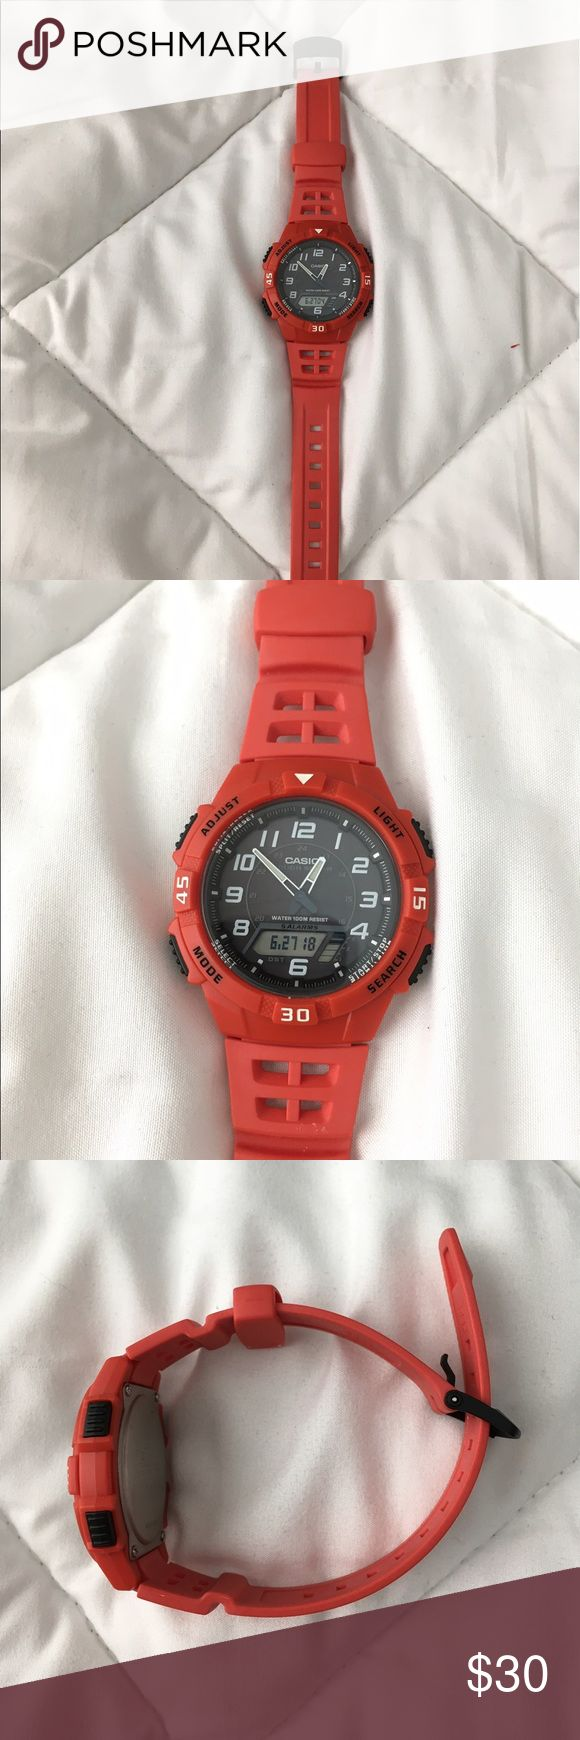 Casio AQS800W-4BV Casio Men's Red Resin Watch From the Manufacturer Utilizing a unique Self- Charging solar power system, this sporty analog/digital combination model provides plenty of functionality. A host of features such as 48-city world time, 5 alarms, stopwatch and dual countdown timers make this a versatile timepiece for almost any sport outing. Also water resistant up to 330ft. Casio Accessories Watches